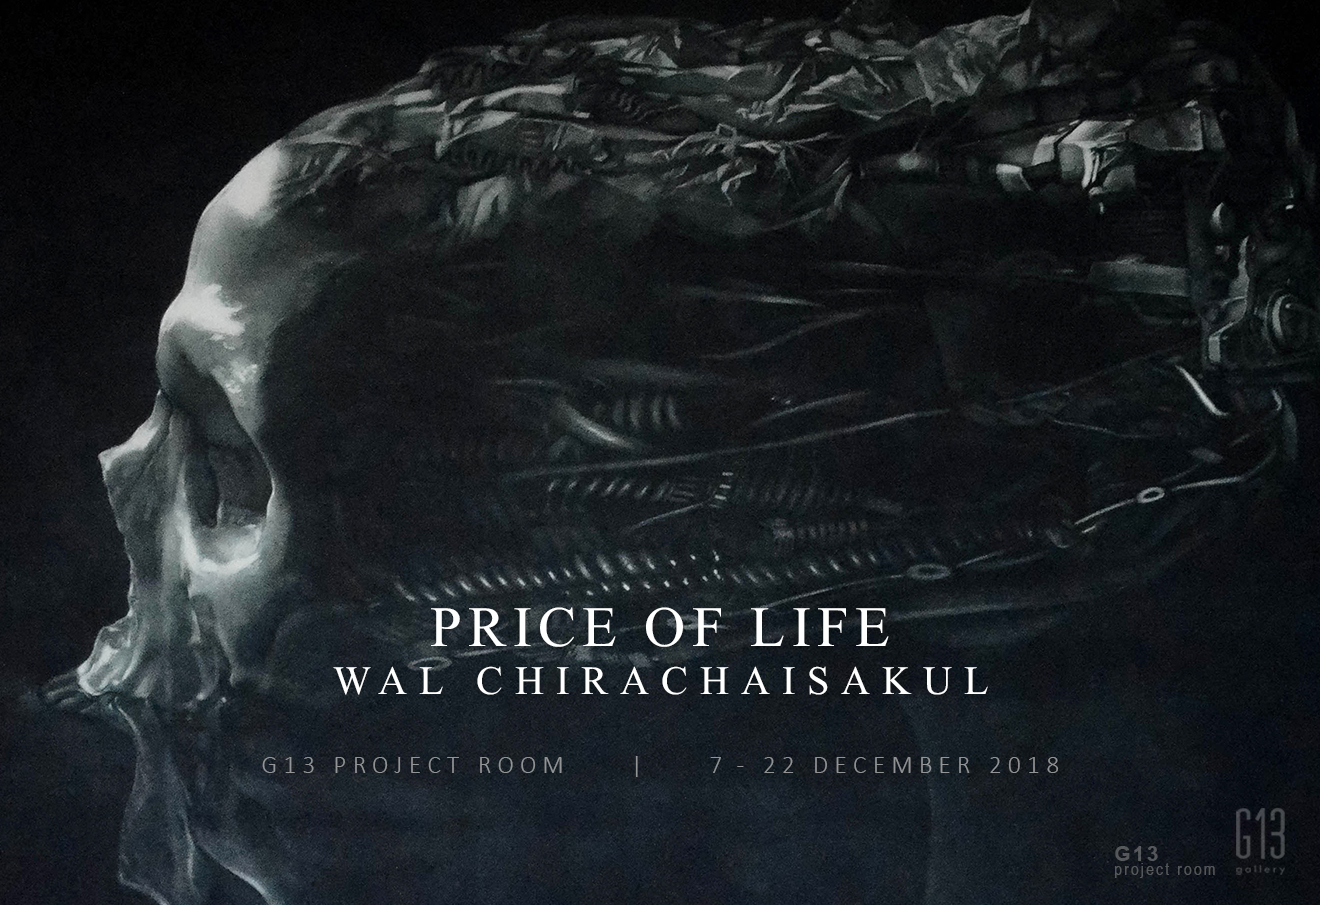 G13 Project Room: 'Price of Life' by Wal Chirachaisakul